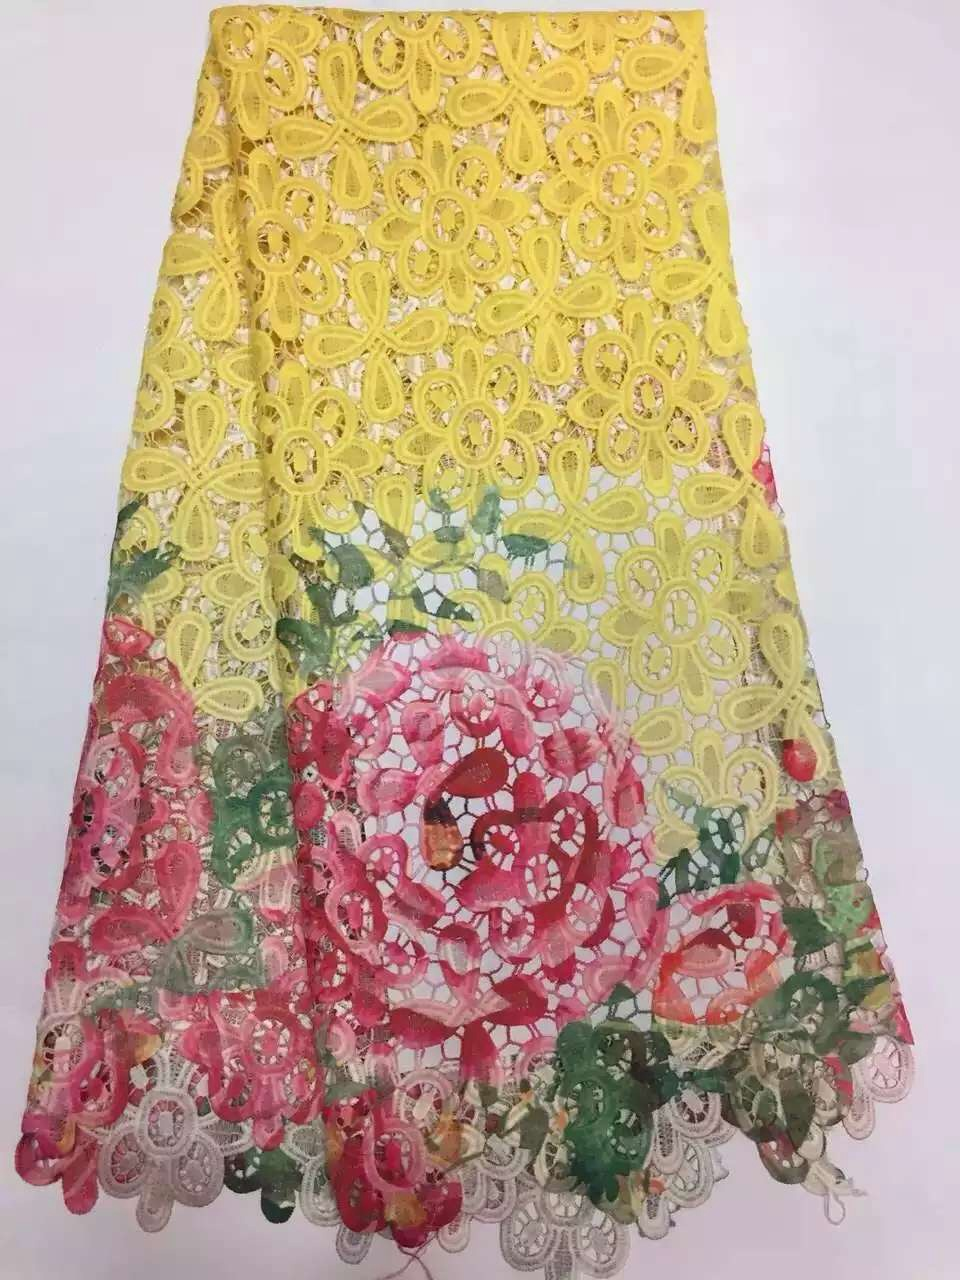 RF507 Applique Patch 3D Flower Golden Sequin Crystal Embroidery African Lace Guipure Fabric Material Sew Wedding